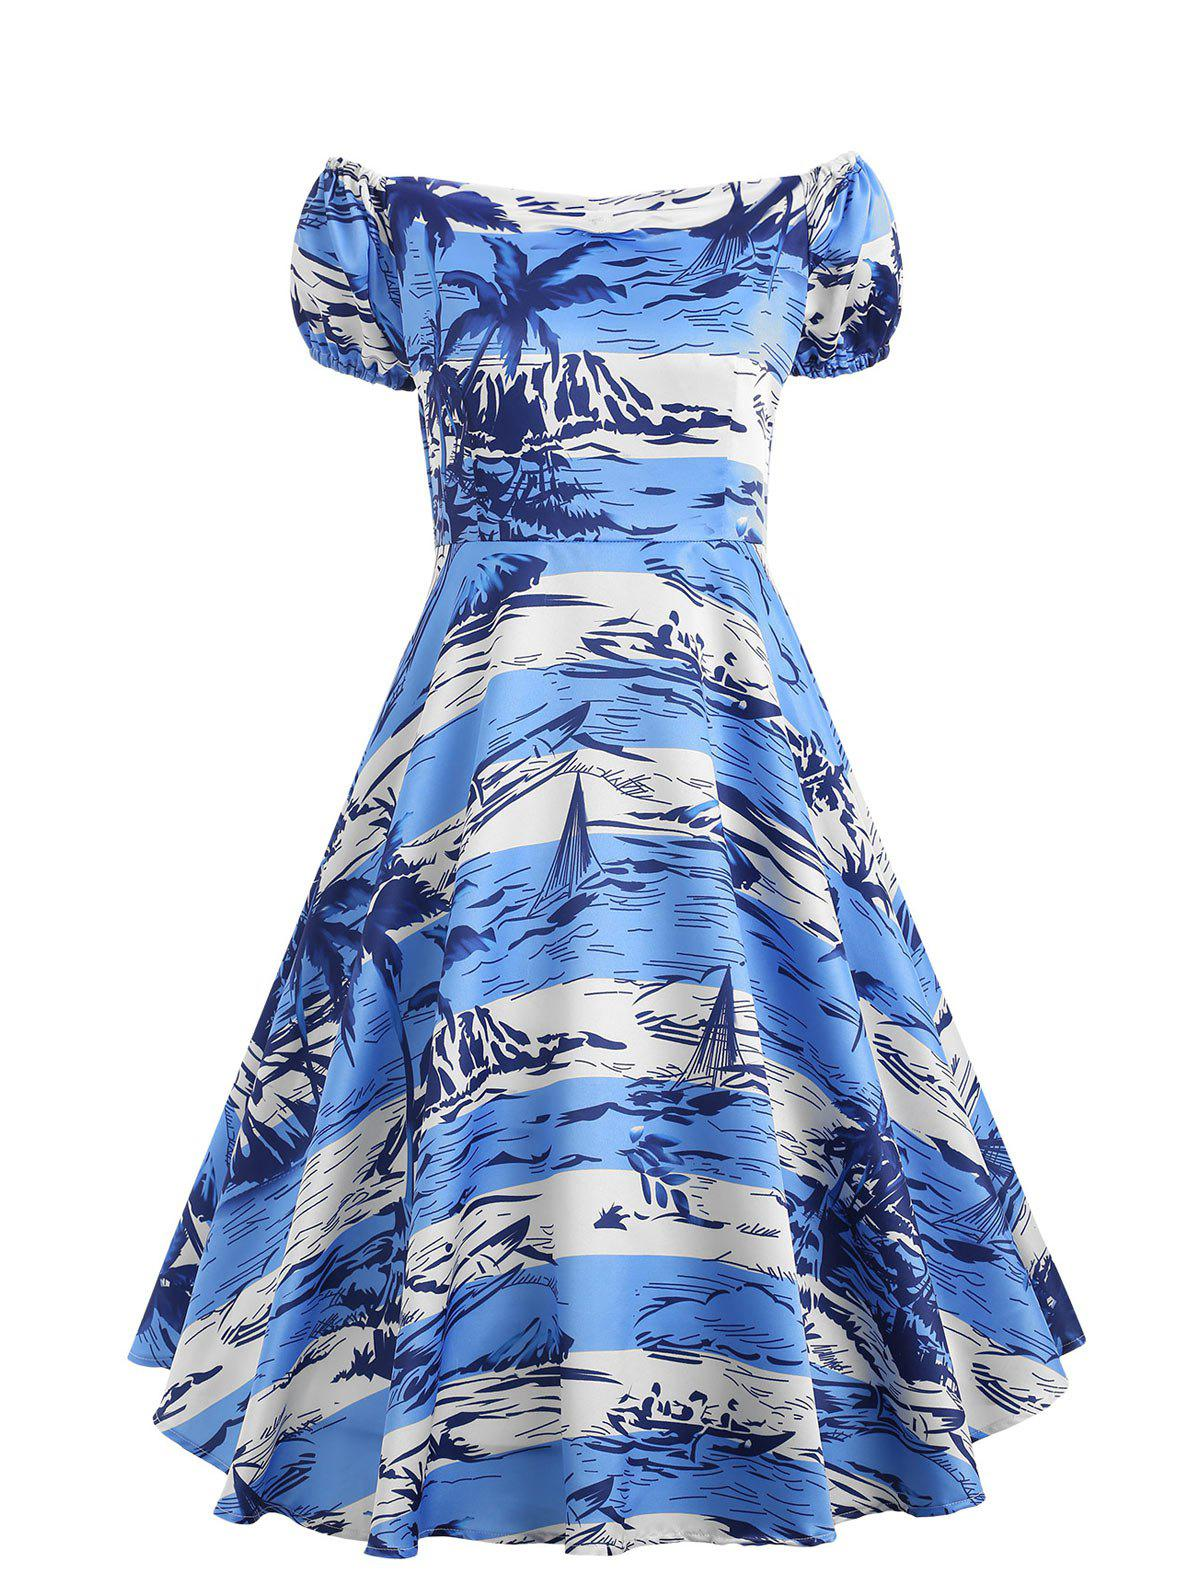 Tropical Palm Tree Printed Vintage Dress 261537302